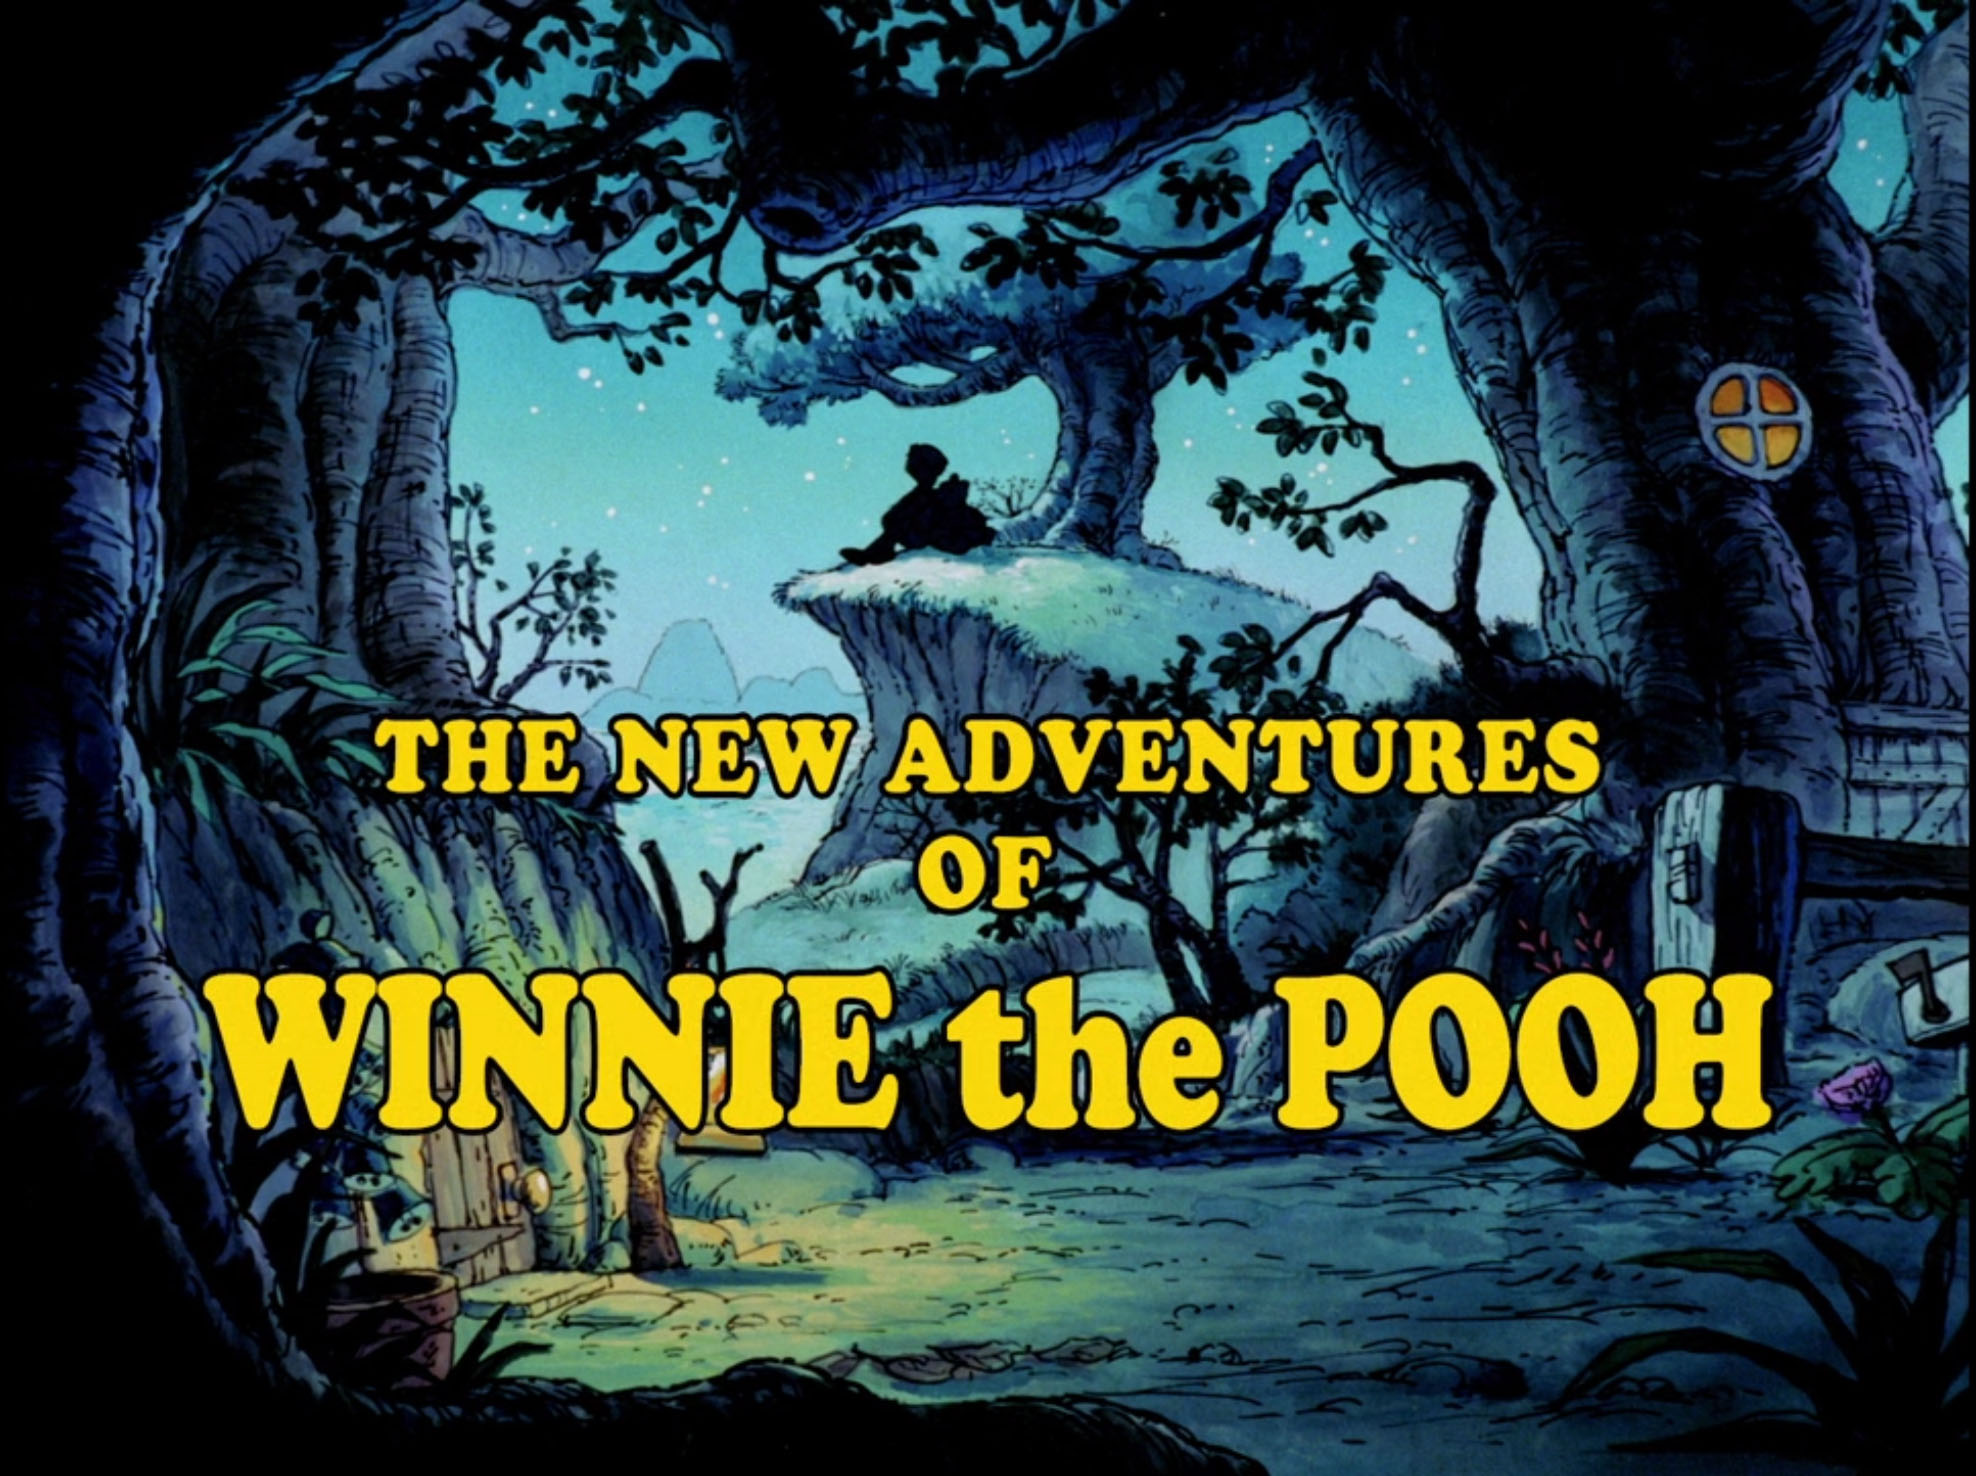 The New Adventures of Winnie the Pooh episode list